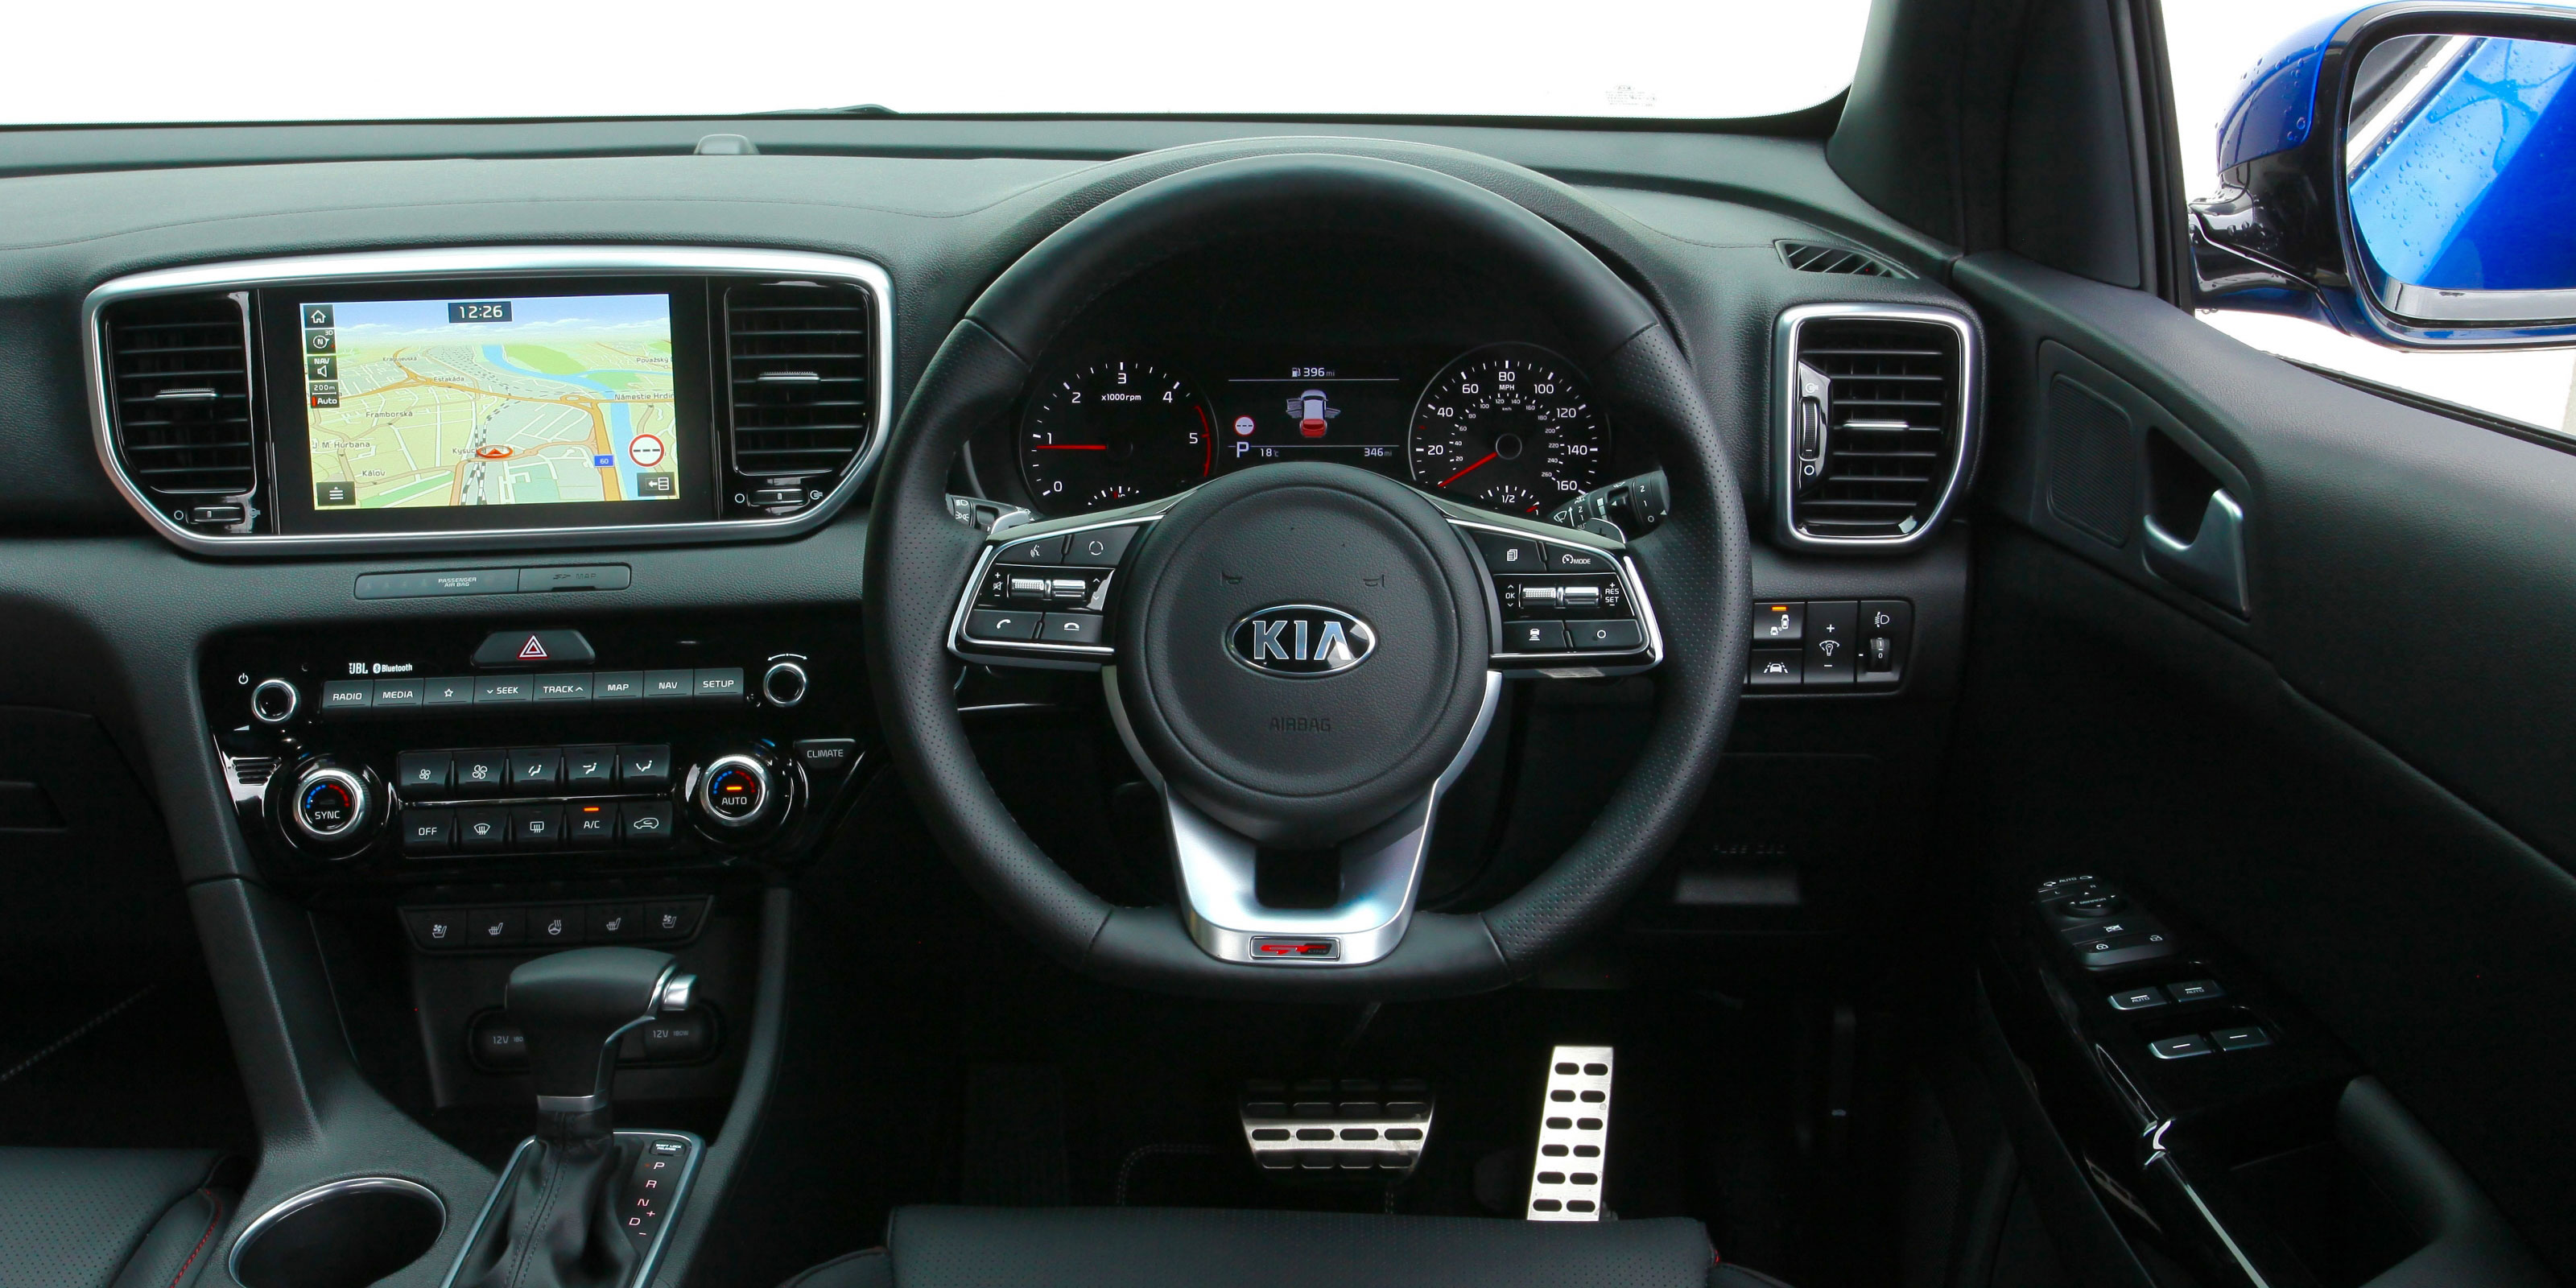 Kia Sportage Interior Dashboard on 2019 Kia Sorento Interior